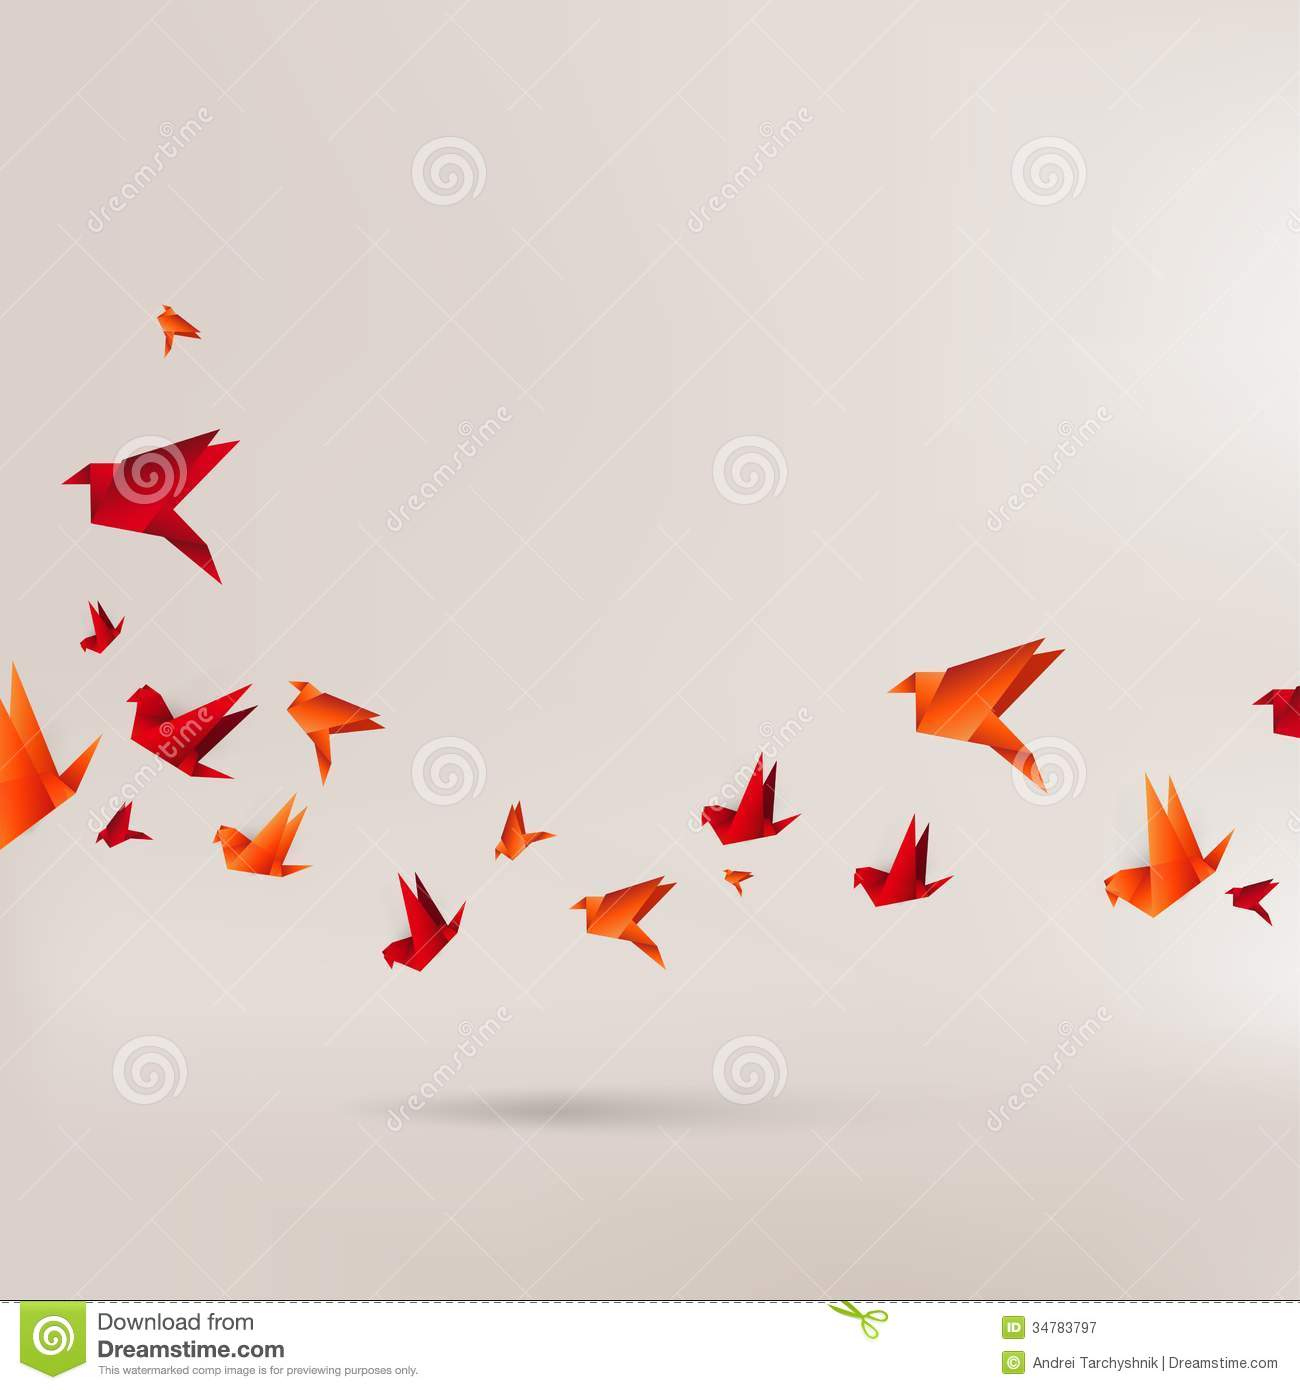 Origami Paper Bird On Abstract Background Stock